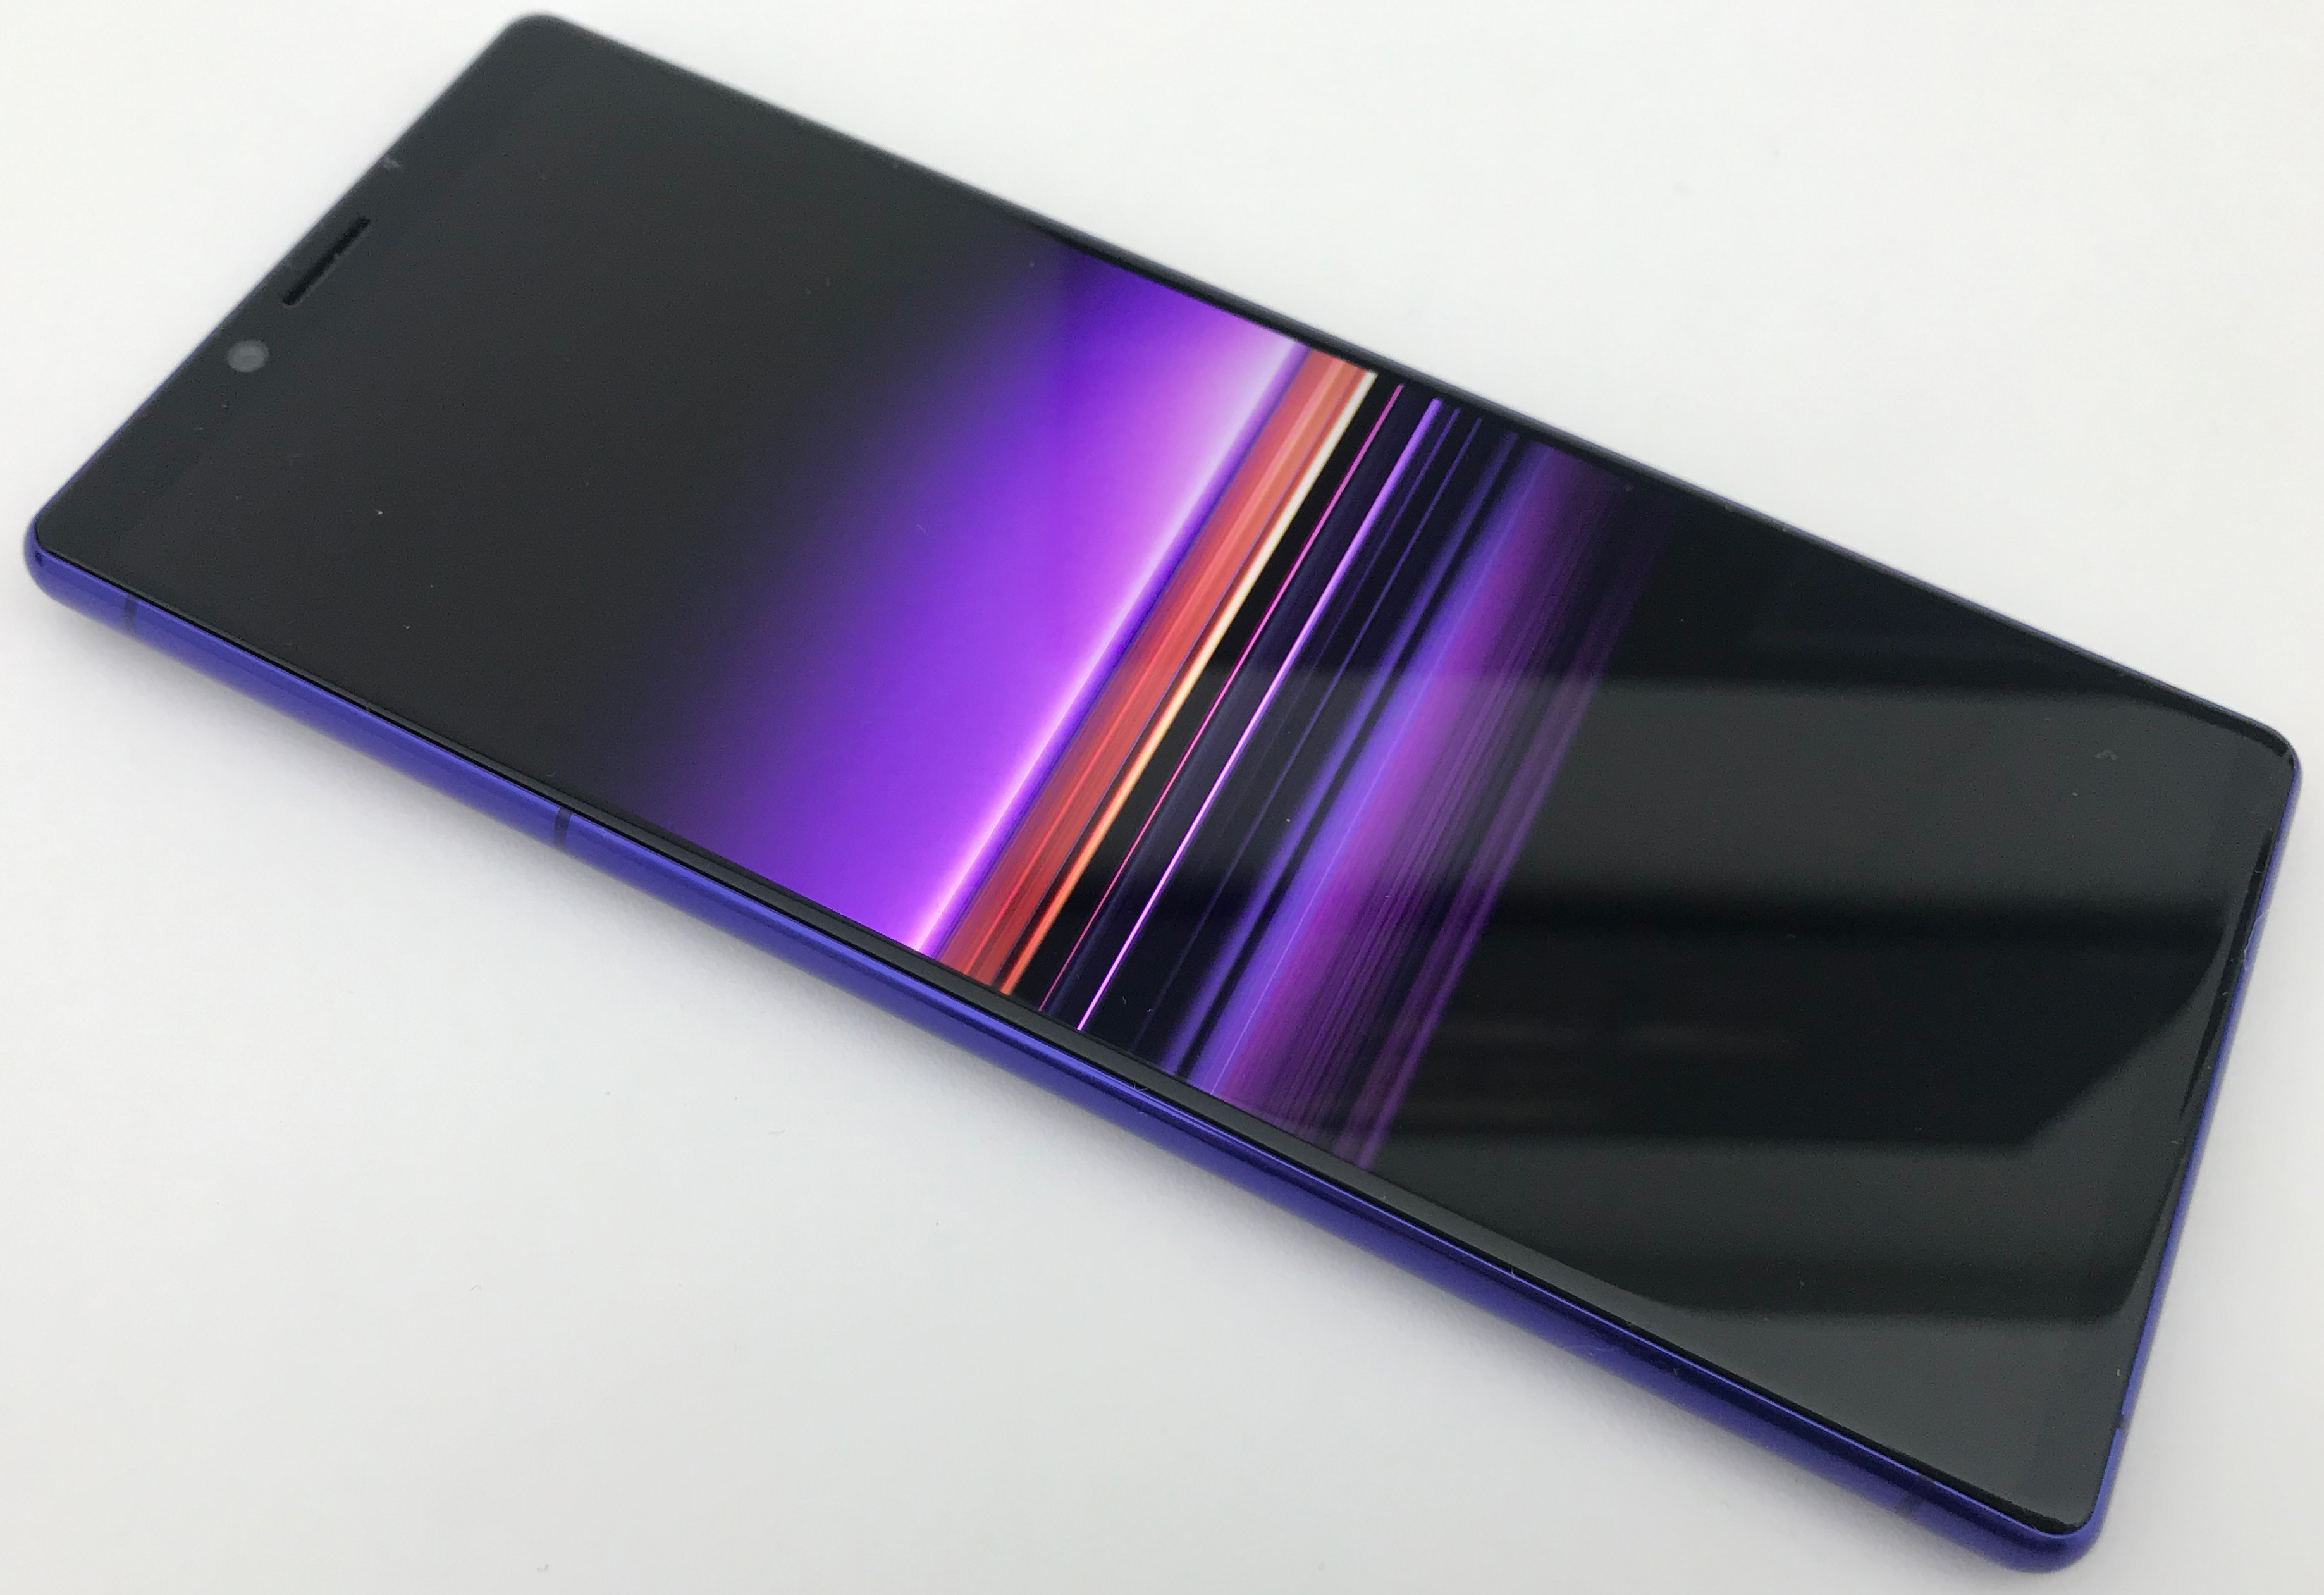 The Sony Xperia 1: A Long 21:9 HDR 4K OLED Smartphone